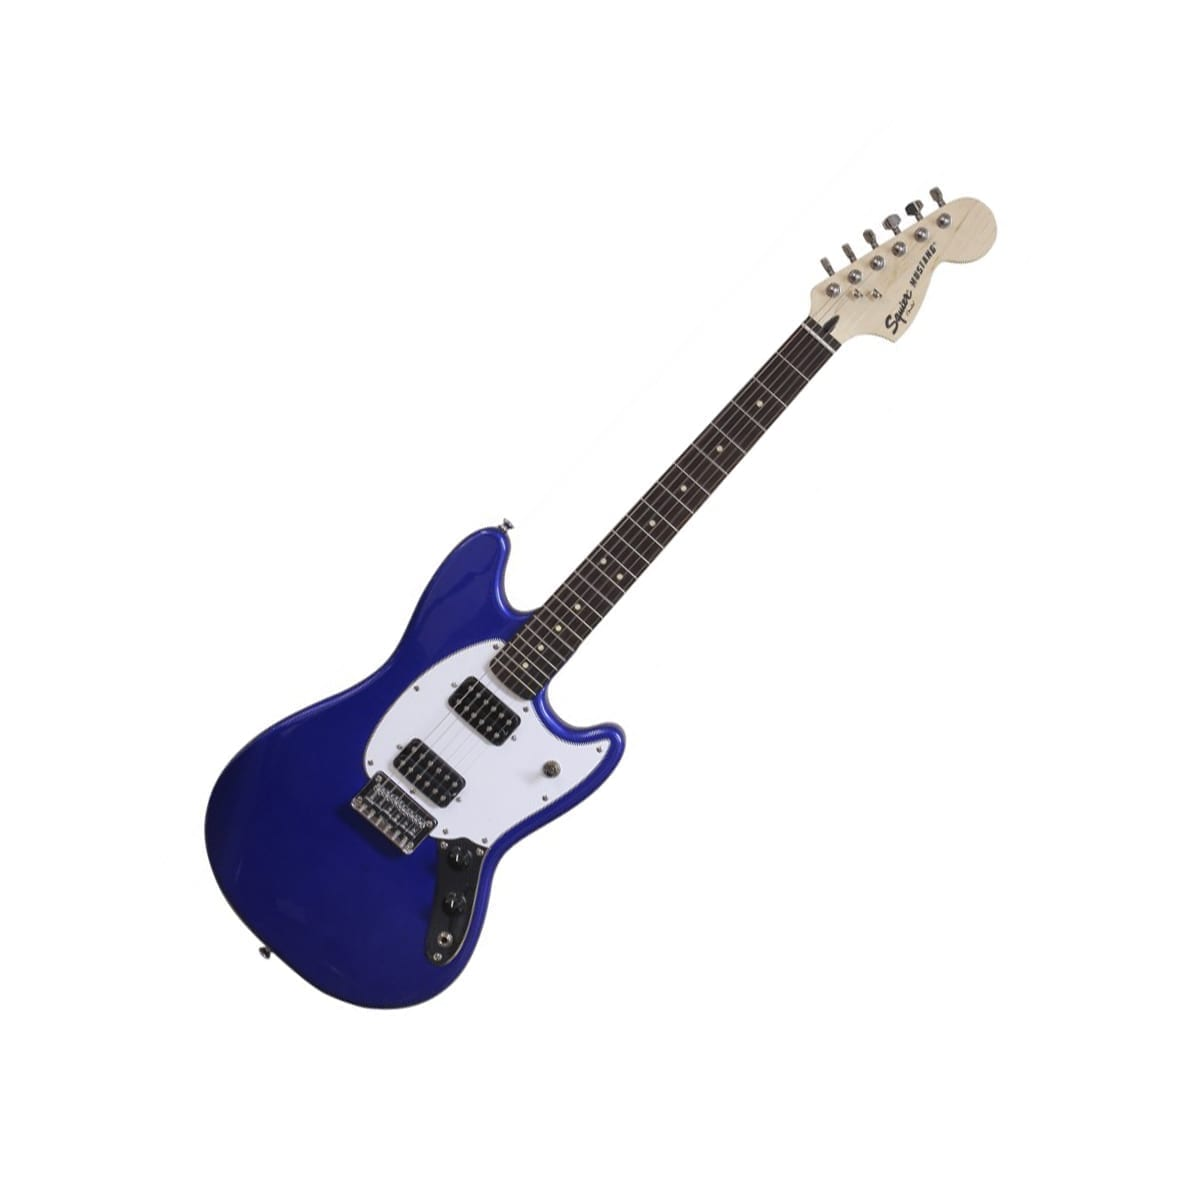 Fender Squire Bullet Mustang - Imperial Blue